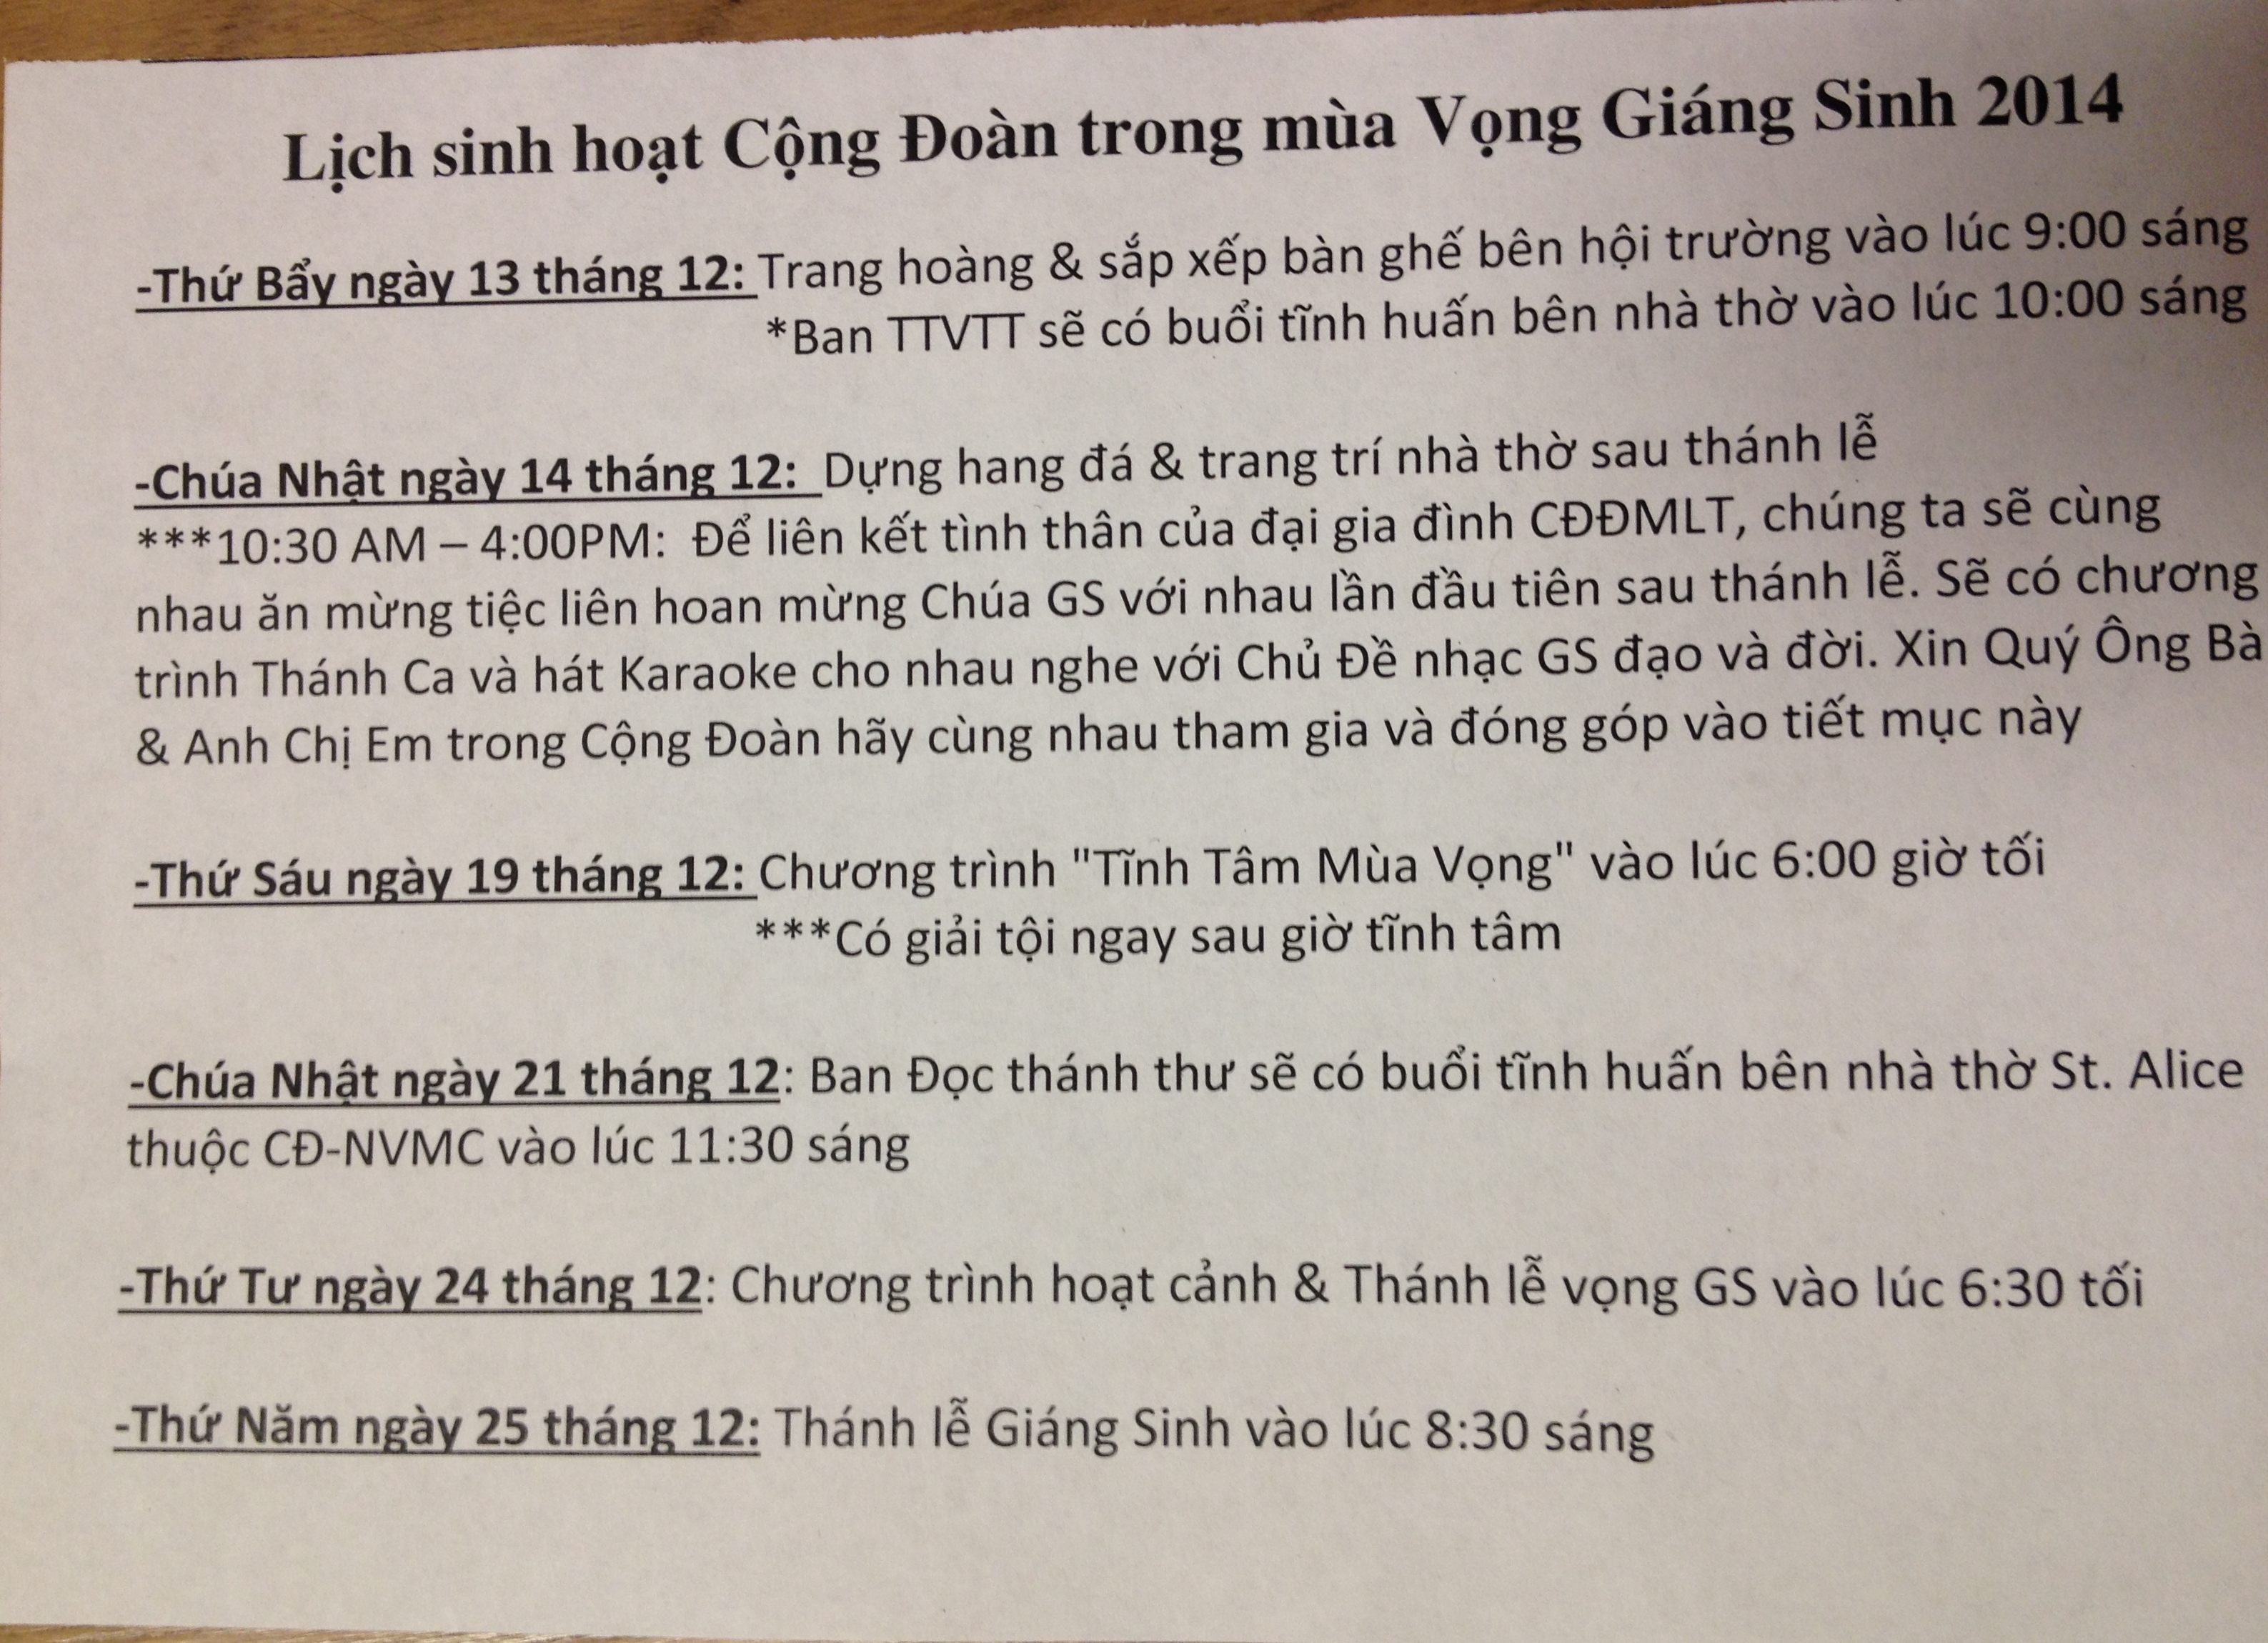 Lich sinh hoat thang 12